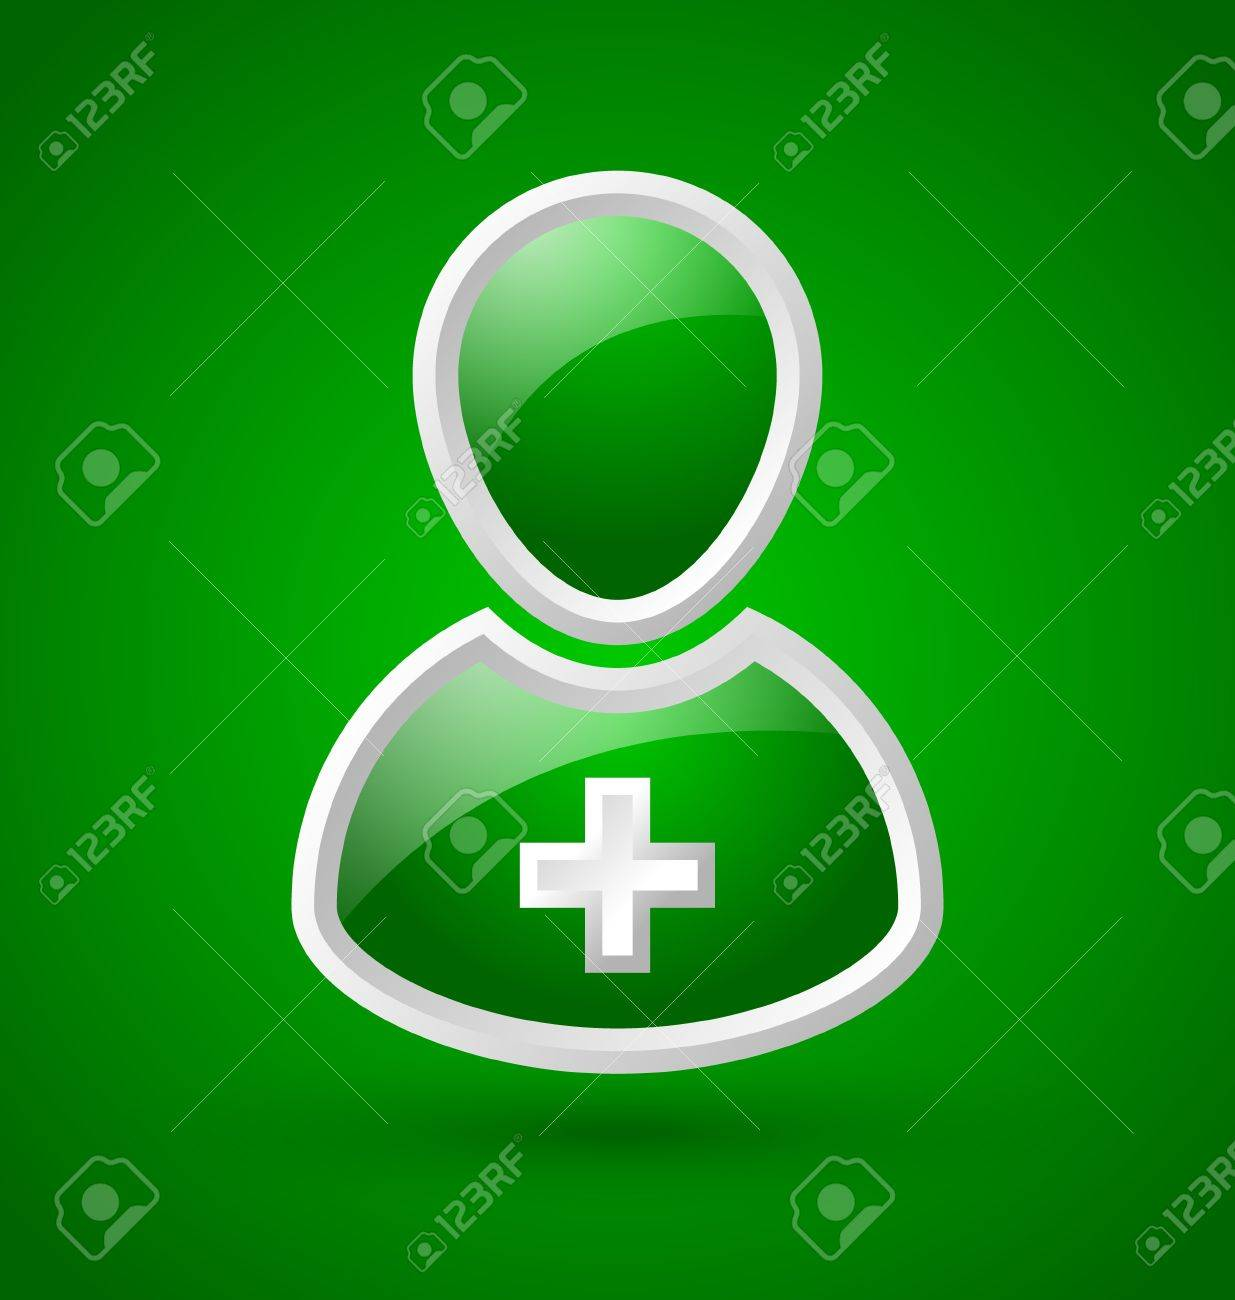 Glossy doctor or nurse icon with white cross isolated on green background Stock Vector - 17222204